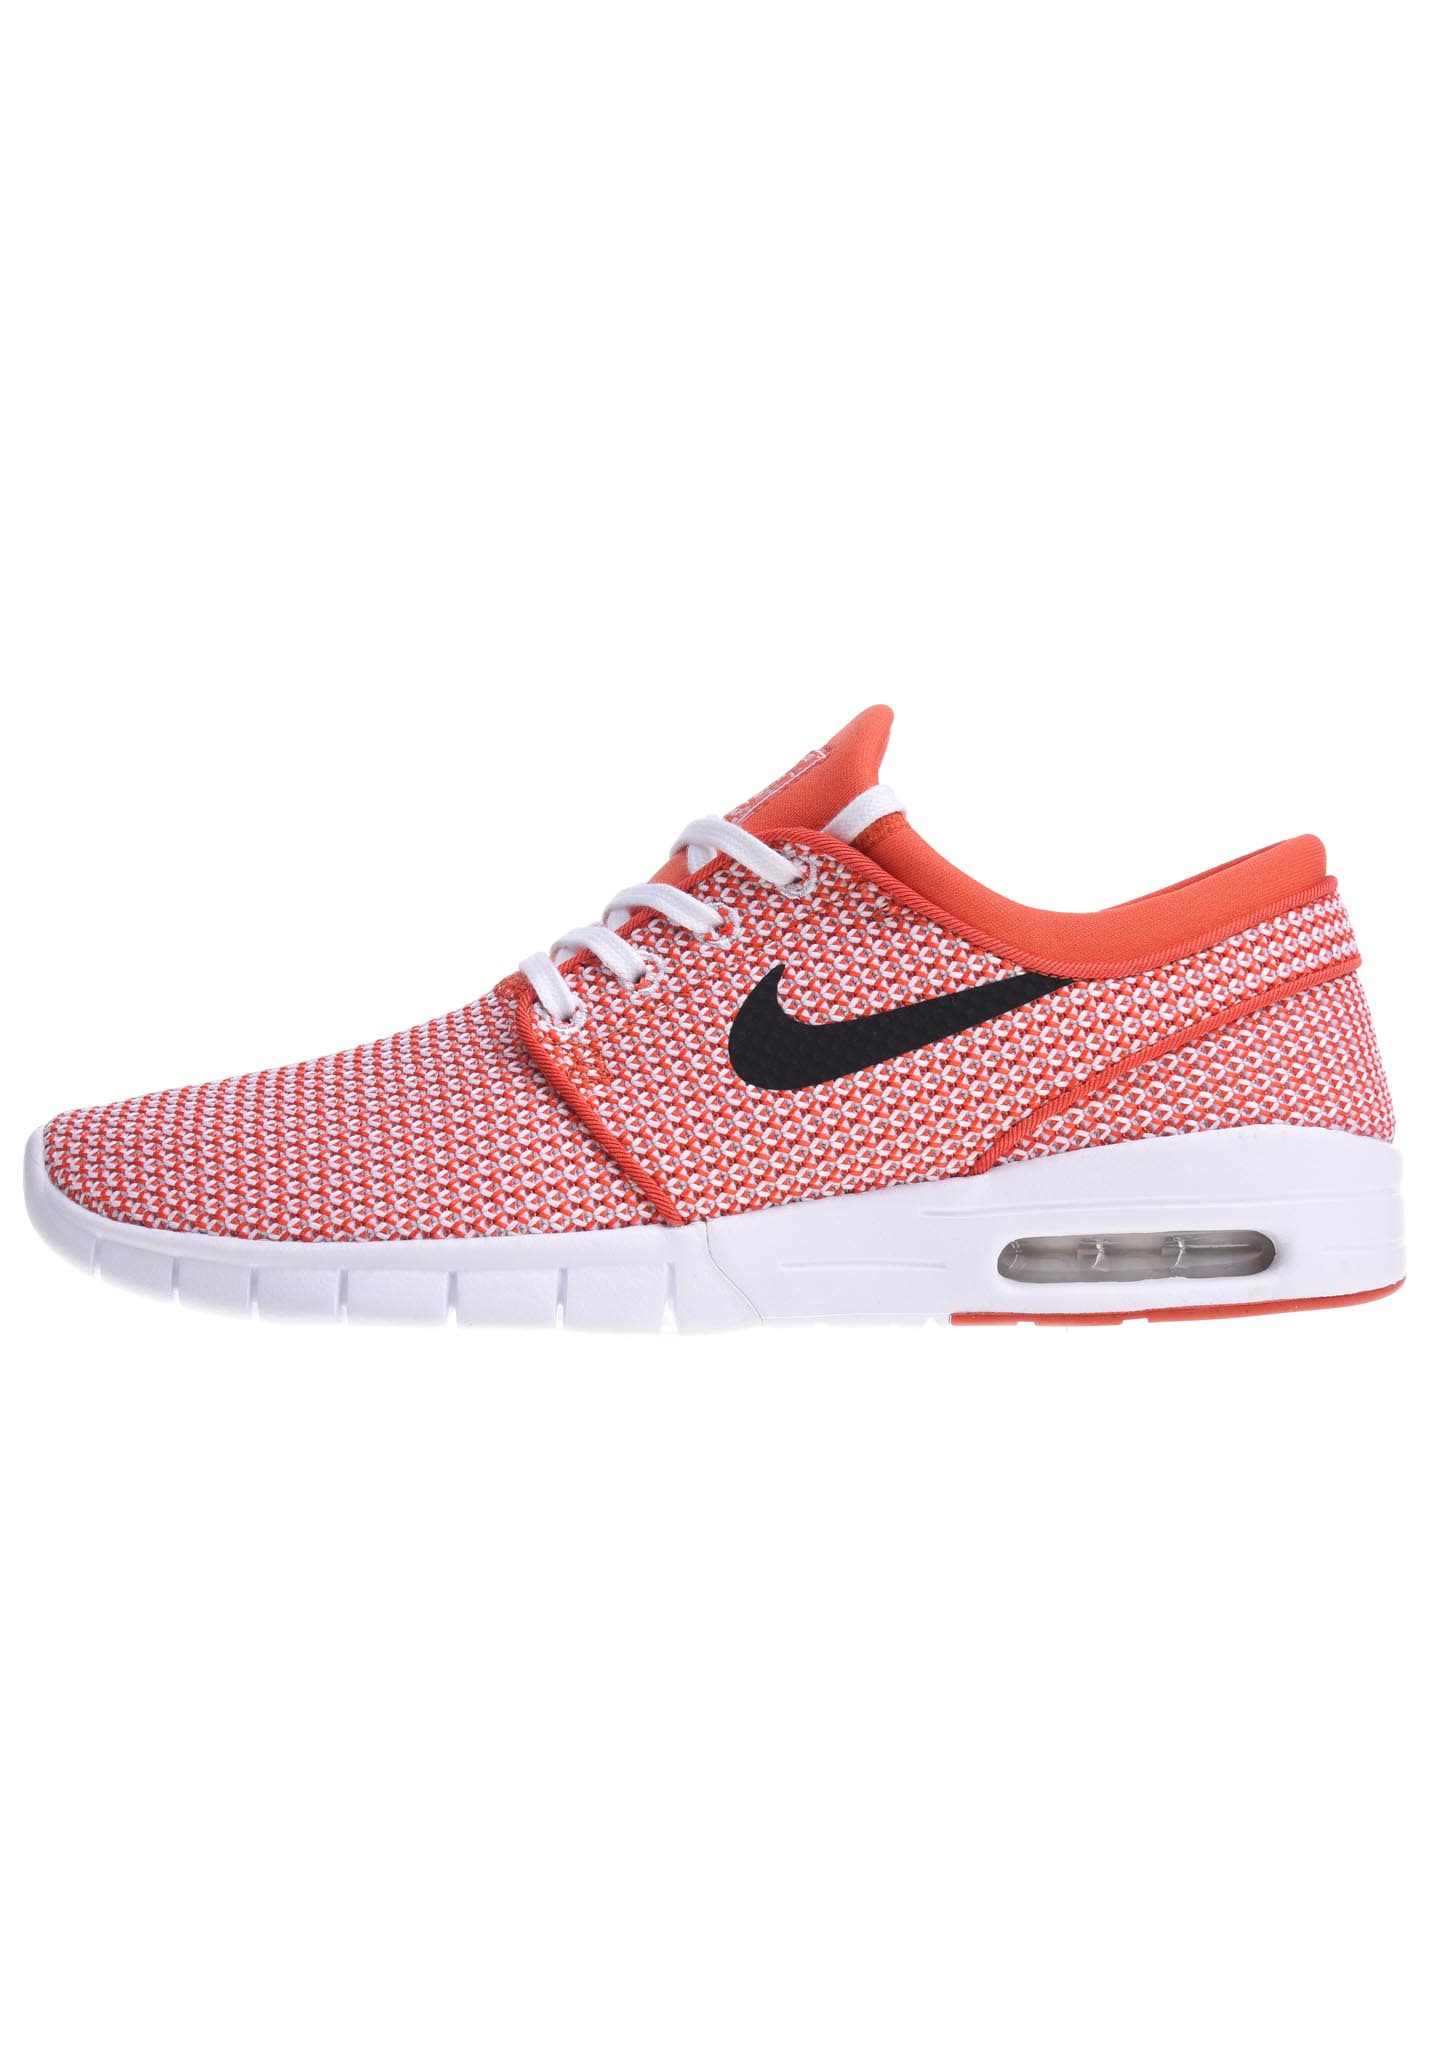 detailing f090c c2105 NIKE SB Stefan Janoski Max - Sneakers for Men - Pink - Planet Sports